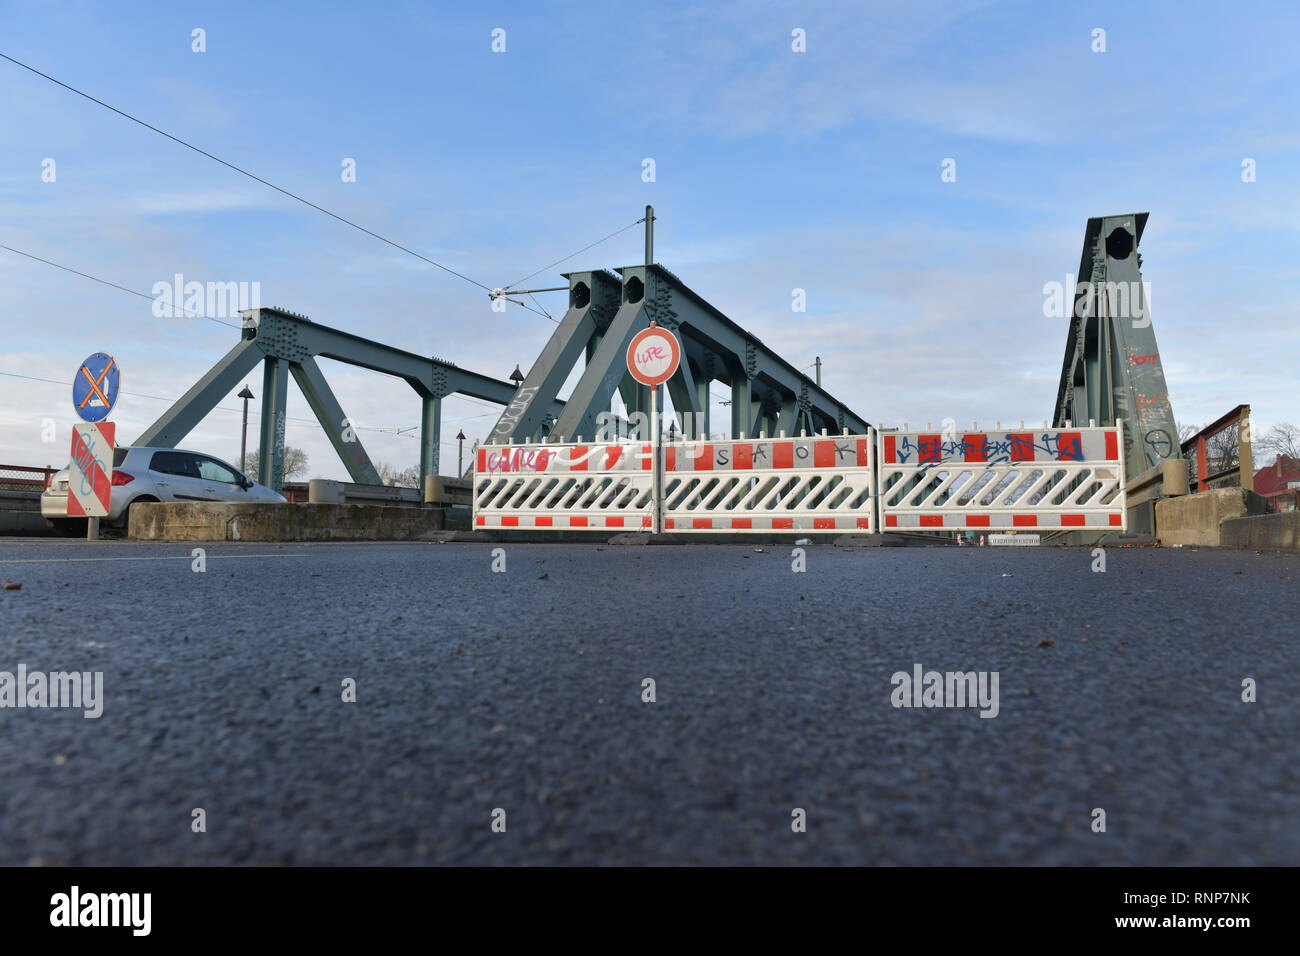 Berlin, Germany. 20th Feb, 2019. Barrier grids are still standing on the Salvador Allende Bridge in Köpenick. A power cable was damaged there during construction work yesterday. Since Tuesday (19.02.2019), the Köpenick district has been cut off from the electricity supply, affecting more than 30,000 households and 2,000 commercial enterprises. Credit: Wolfgang Kumm/dpa/Alamy Live News - Stock Image